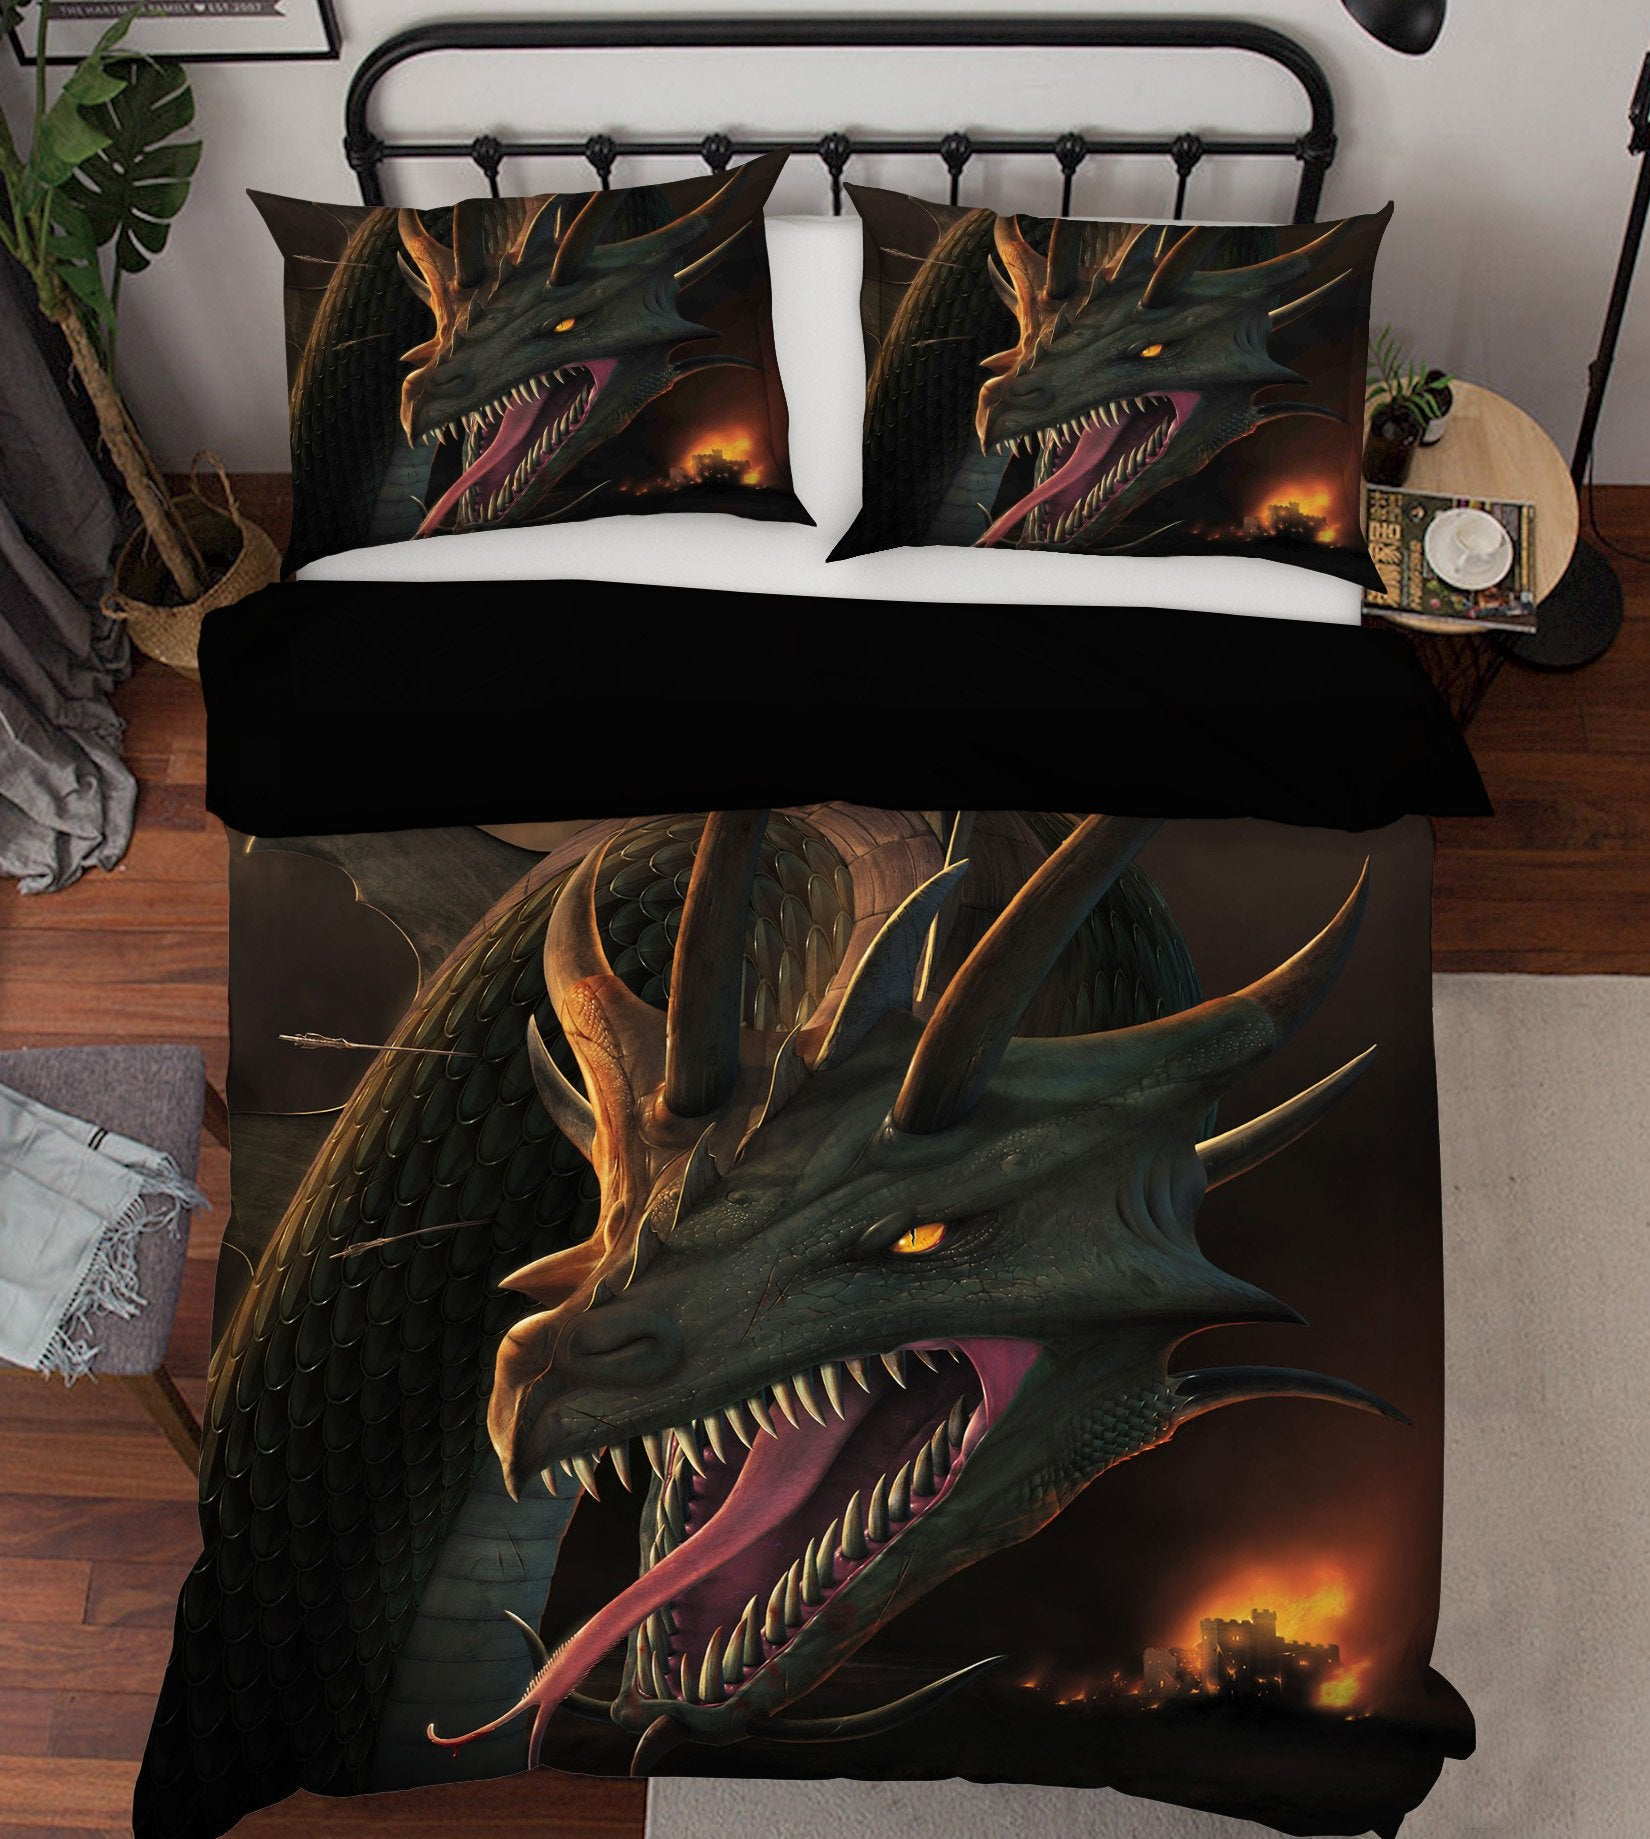 3D Annihilation 2109 Bed Pillowcases Quilt Exclusive Designer Vincent Quiet Covers AJ Creativity Home